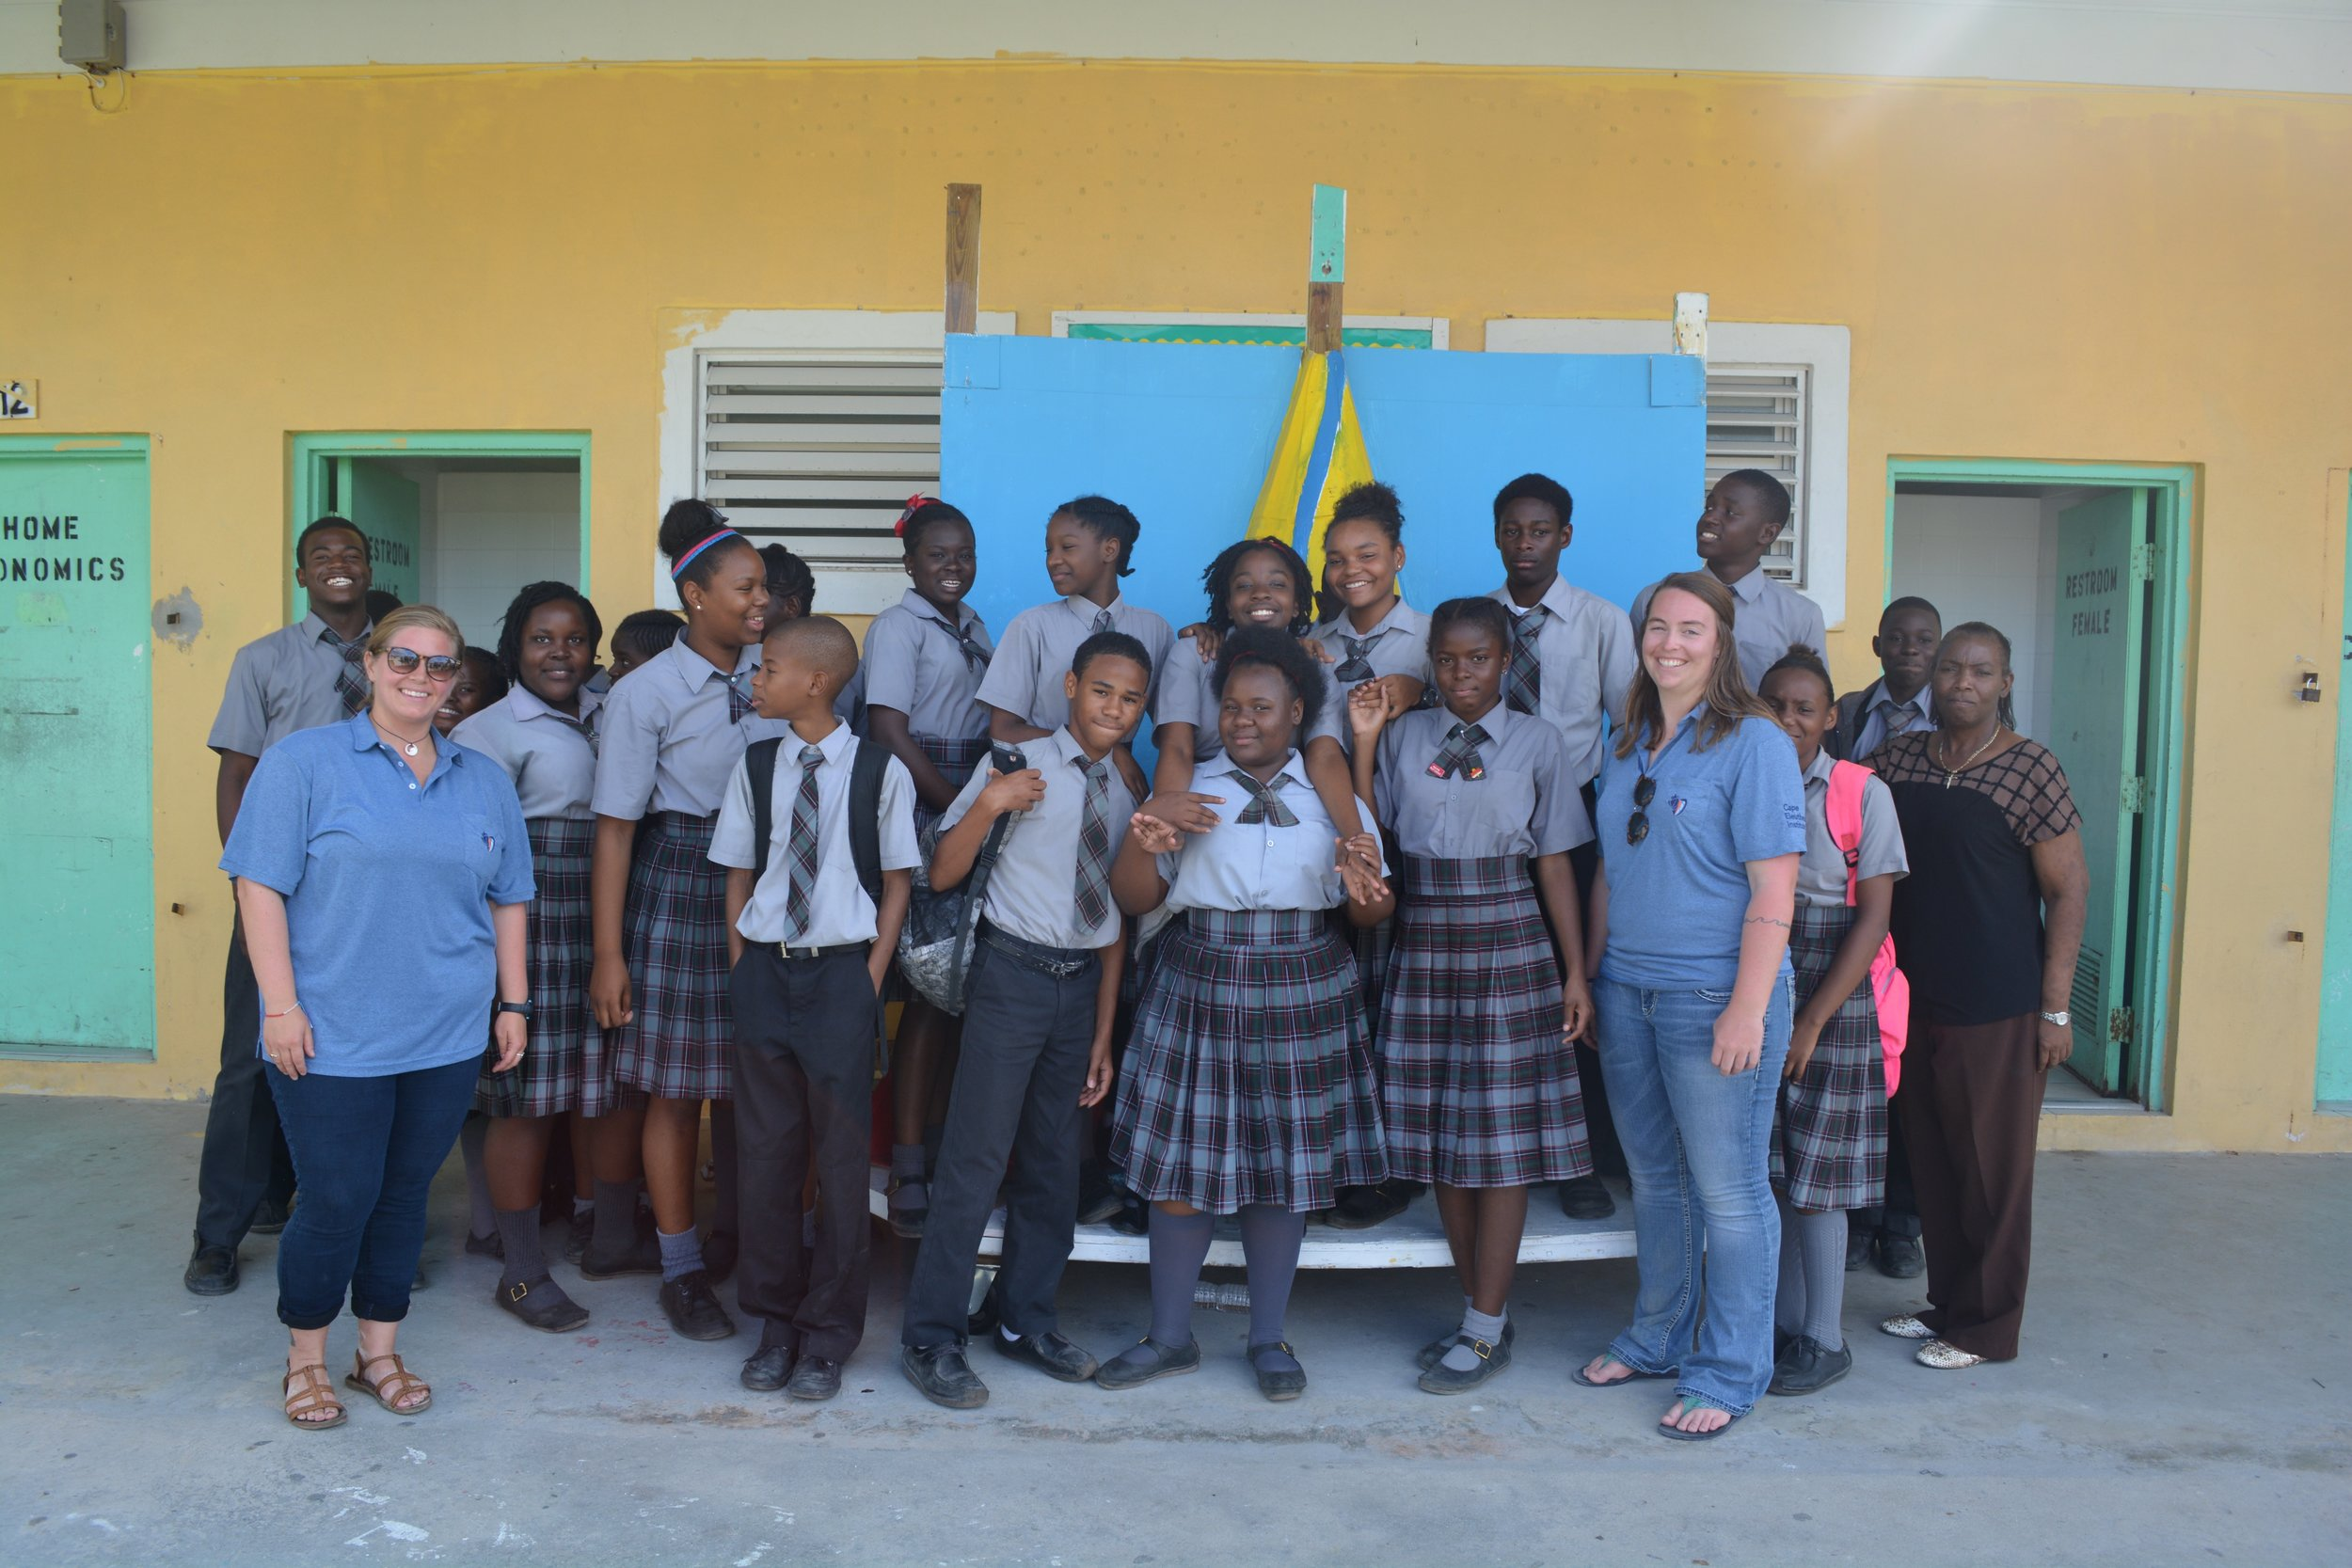 Meagan Gary and Chelsea Begnaud after their presentation at North Eleuthera High School.